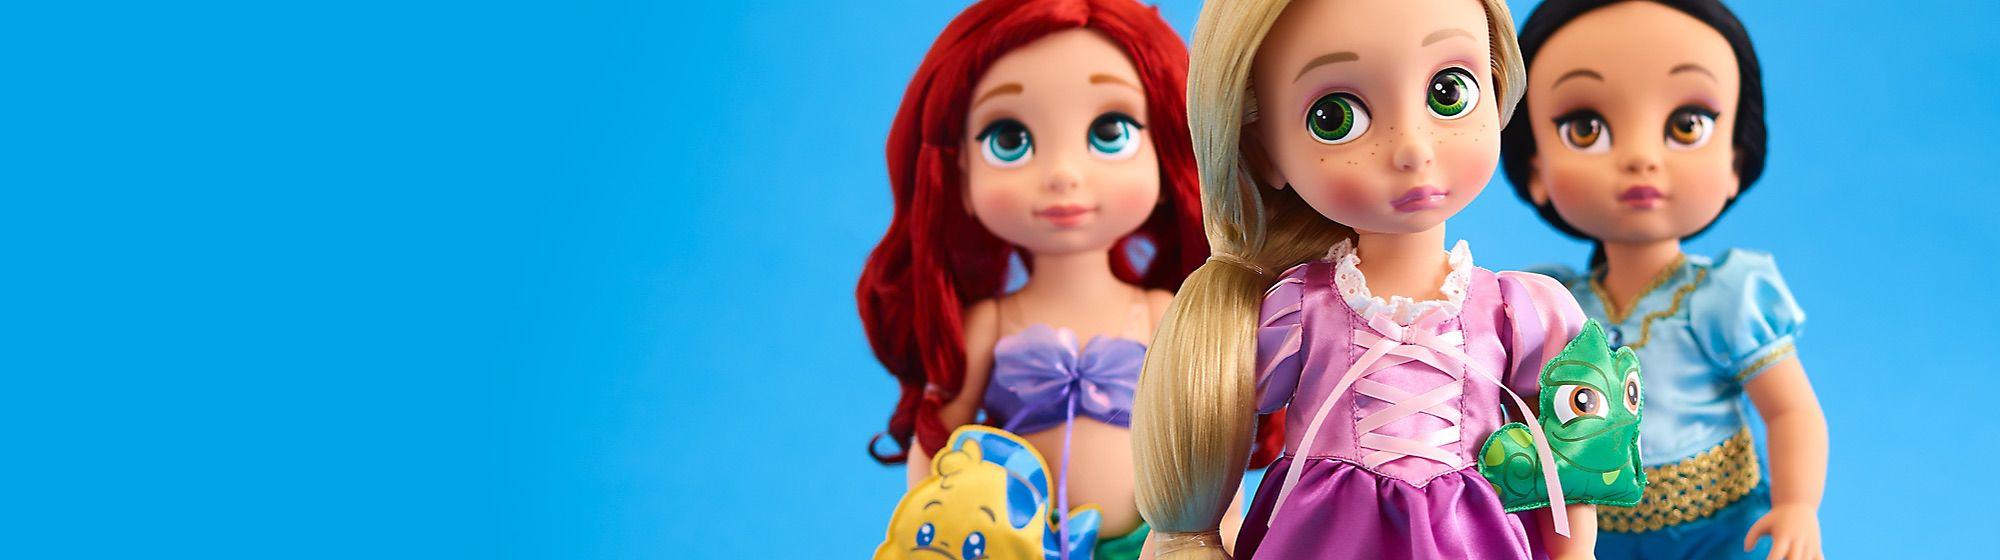 Disney Animators' Collection Create endless stories with our Disney Animators' collection. Playtime never looked so cute